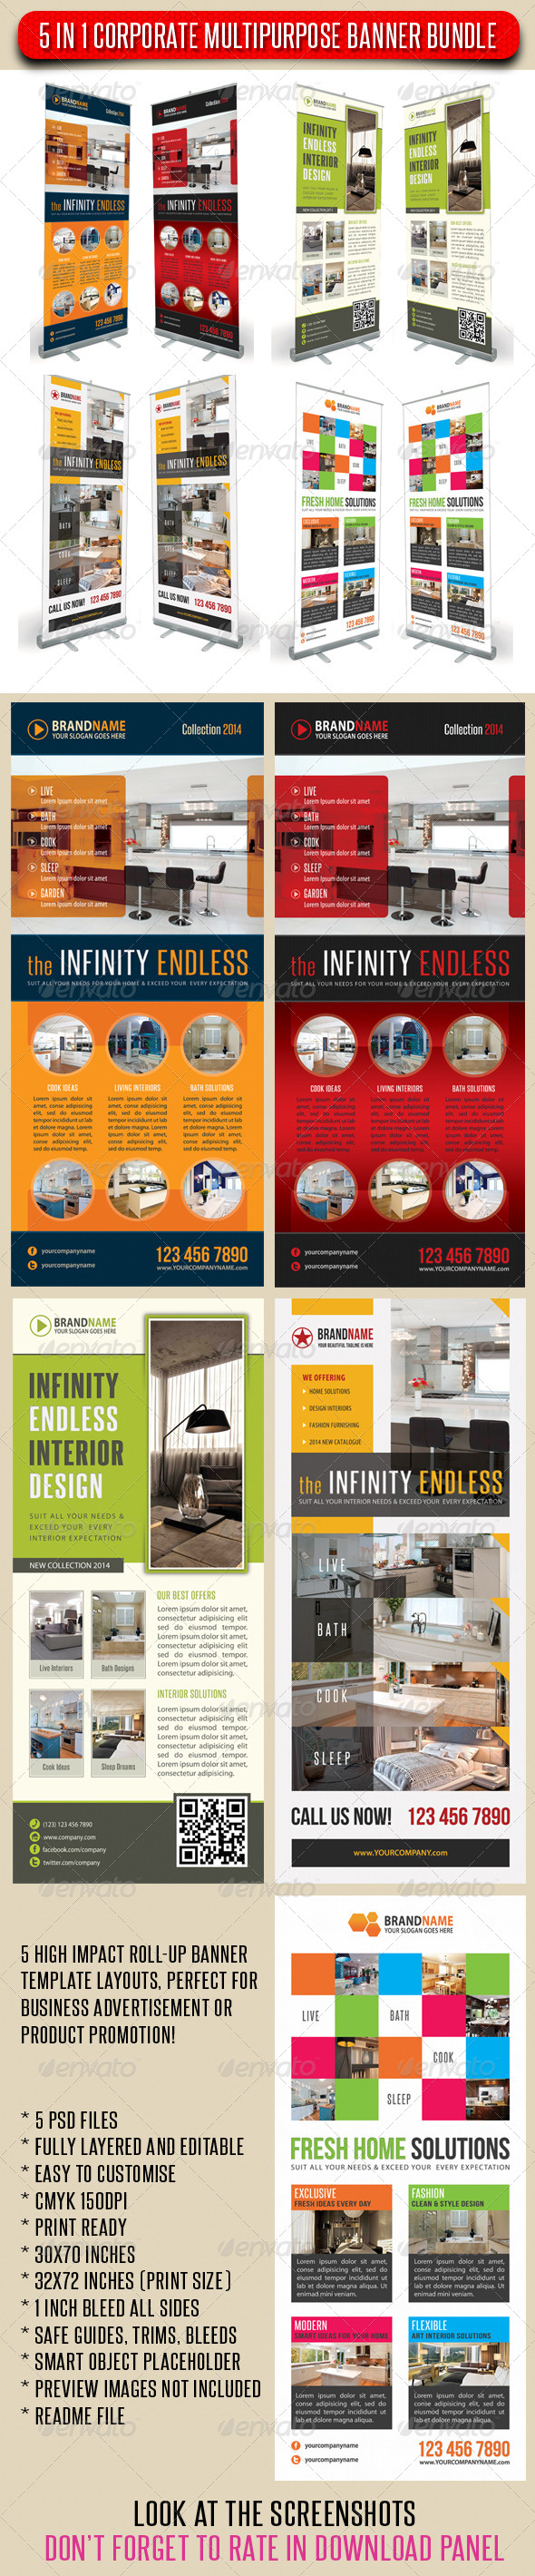 GraphicRiver 5 in 1 Corporate Multipurpose Banner Bundle 08 6912417